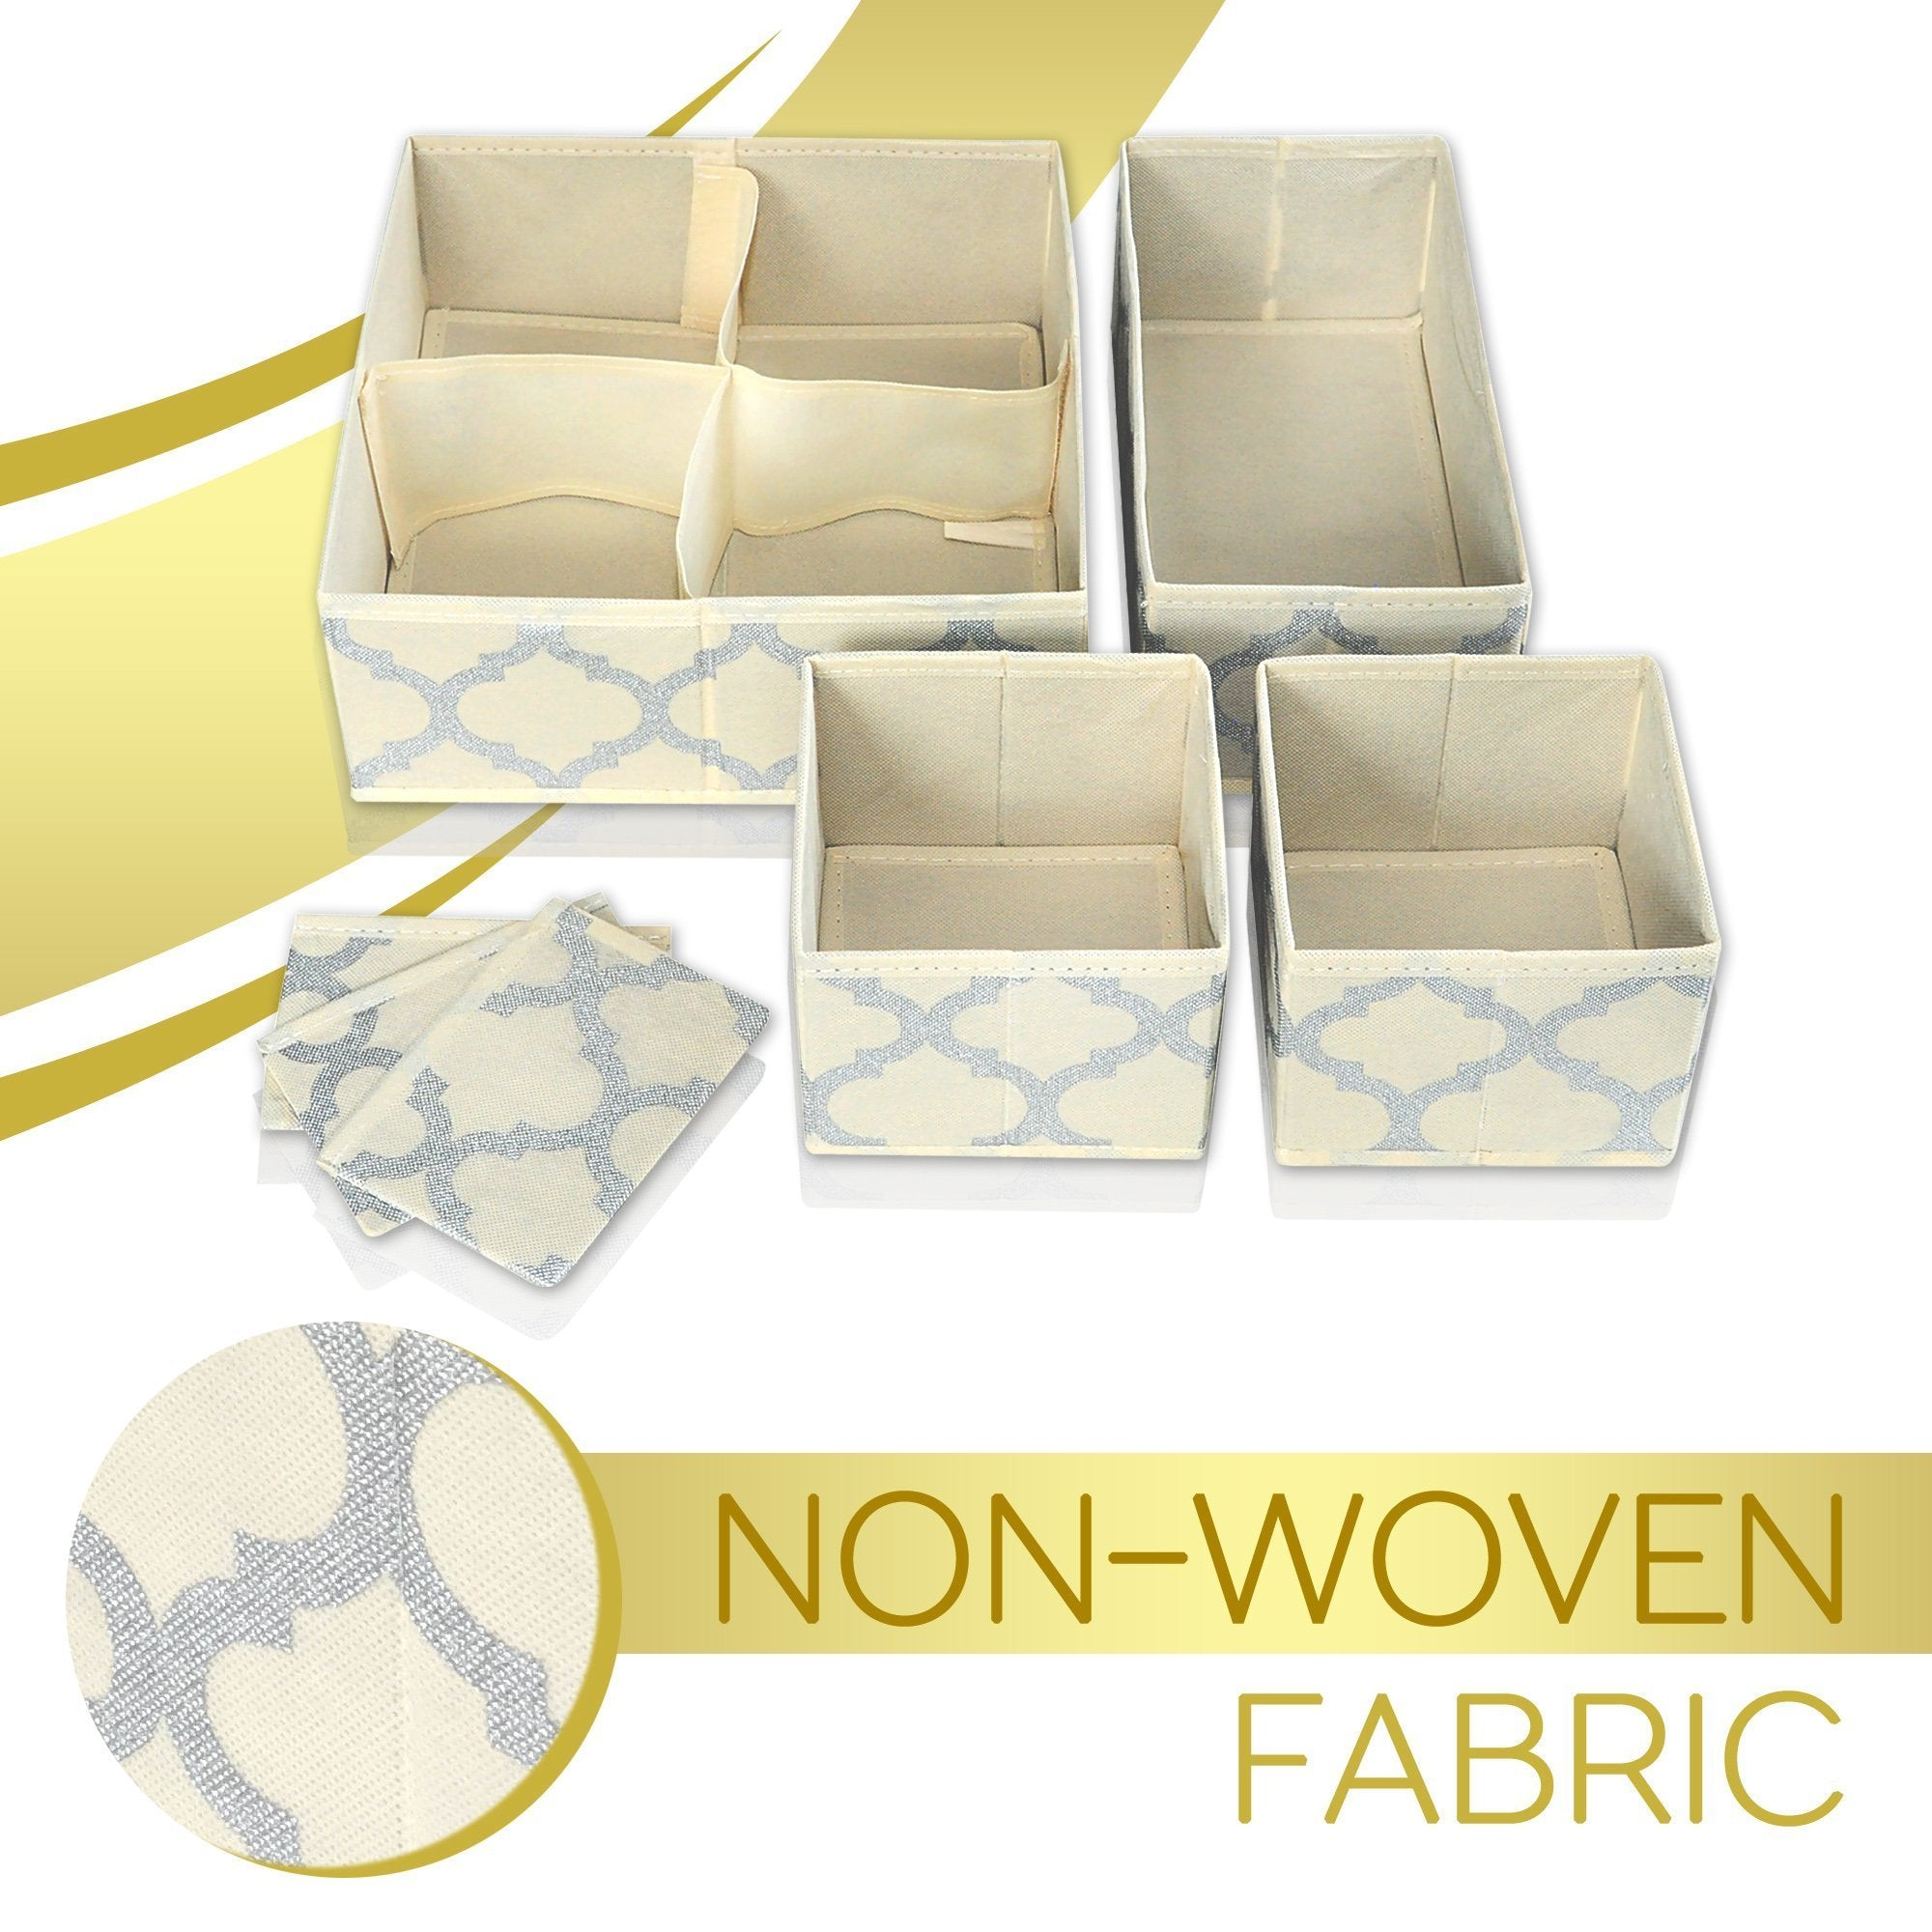 Great set of 4 organizer bins with dividers for closet dresser drawer inserts bathroom dorm or baby nursery store socks underwear clothes clothing organization organizador de closet set of 4 beige